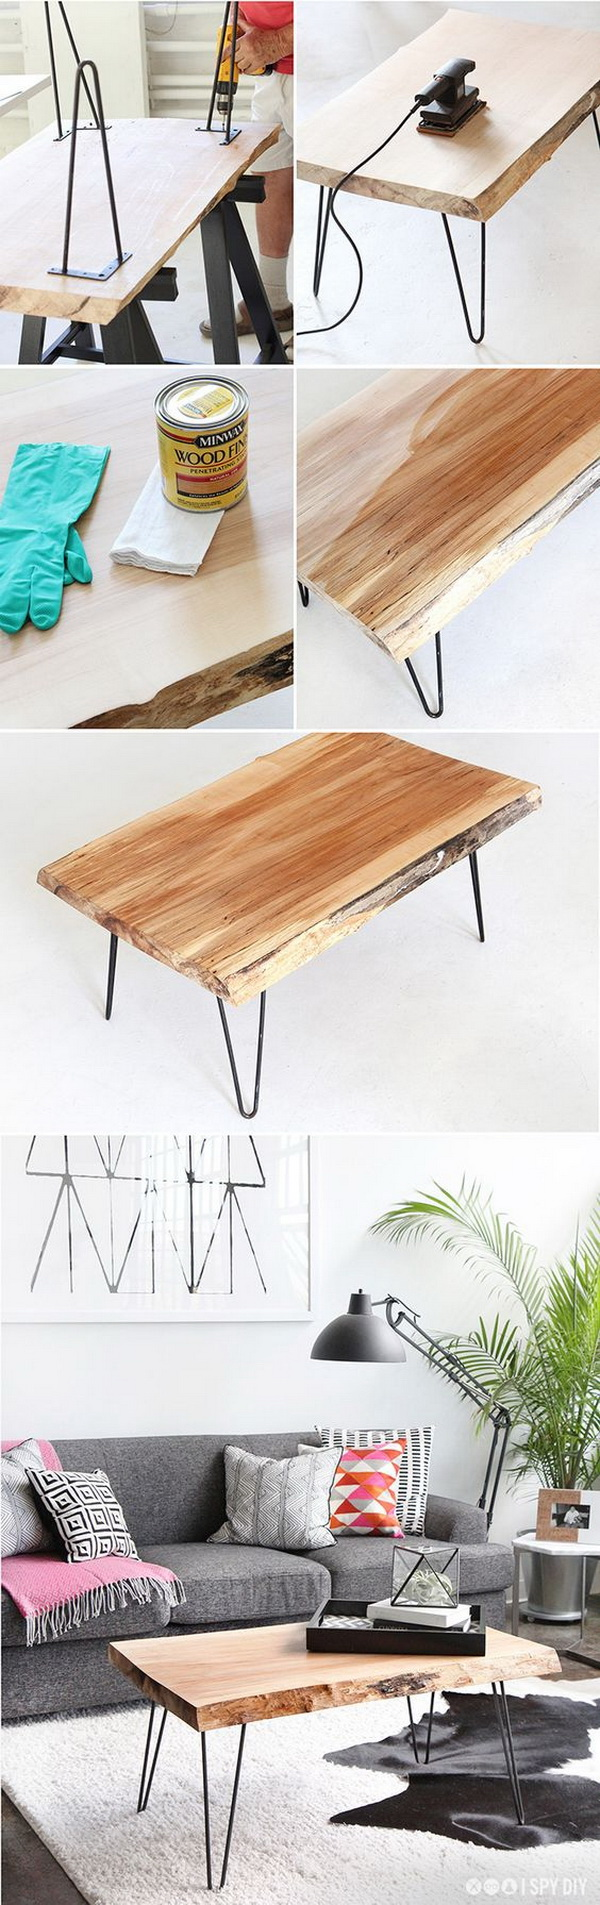 Wood Slab Coffee Table. All you need for this rustic yet high-end-looking coffee table is a piece of wood slab from the hardware store, hairpin legs and your favorite wood stain on a budget.